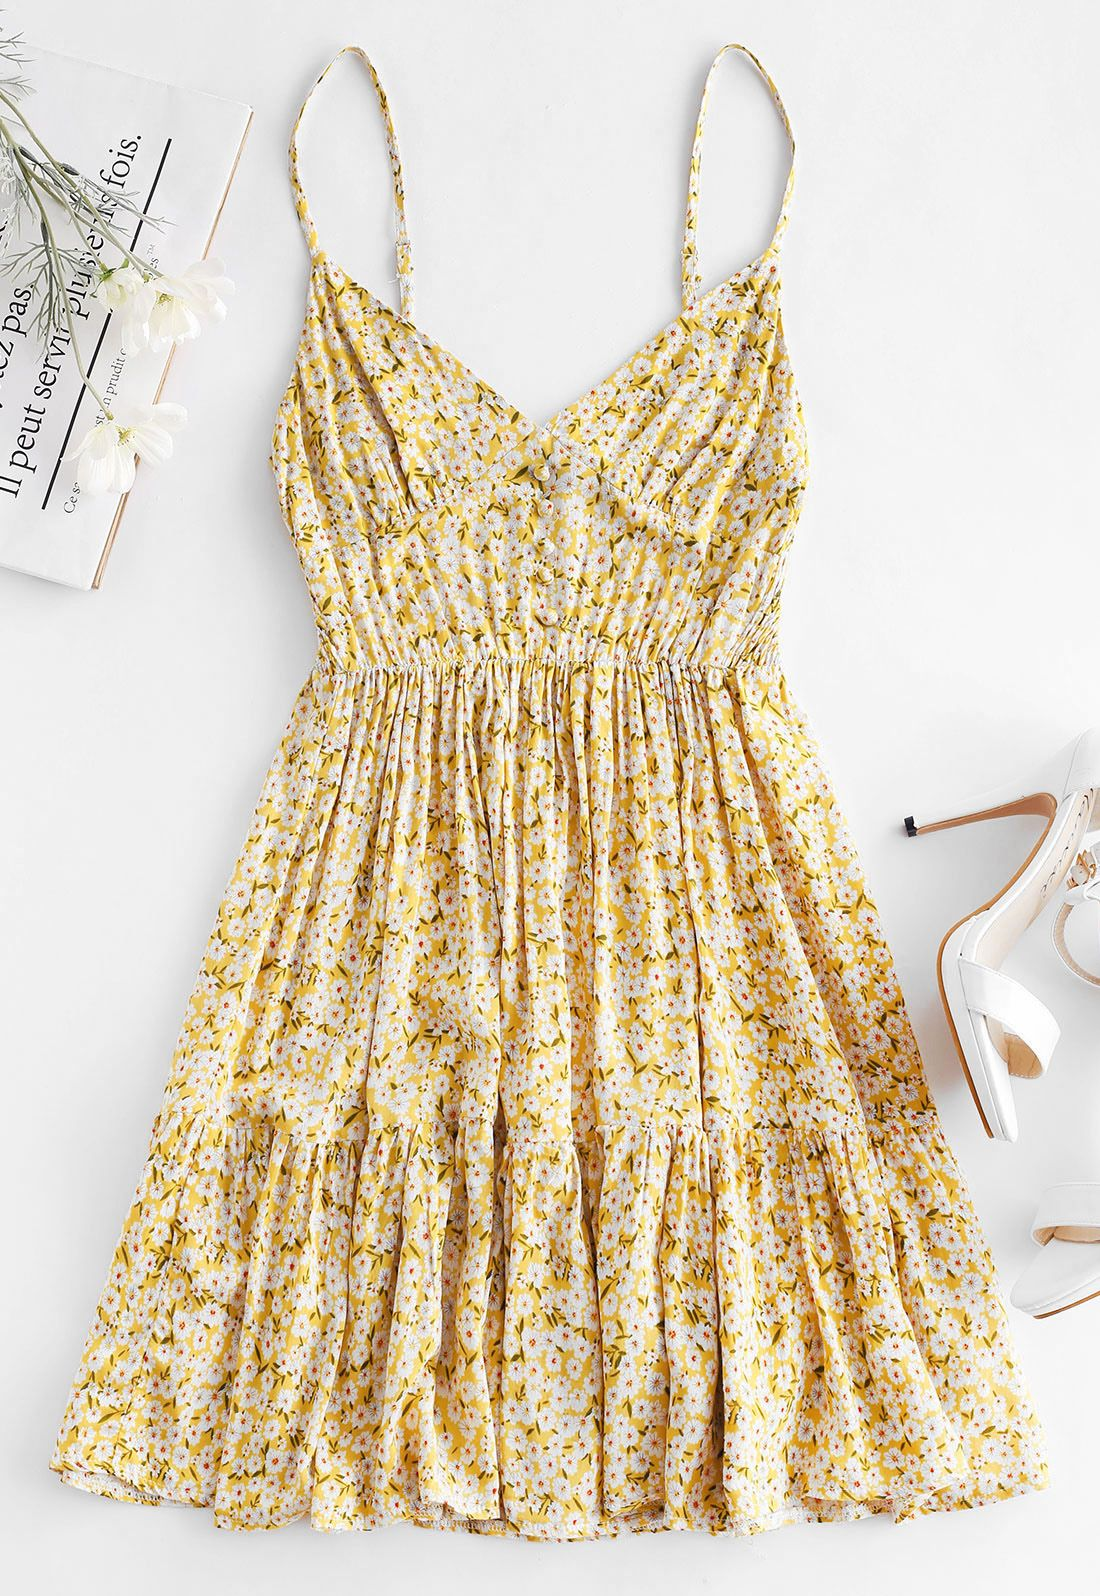 Lemon Yellow Cute Floral Summer Dress #beachvacationclothes